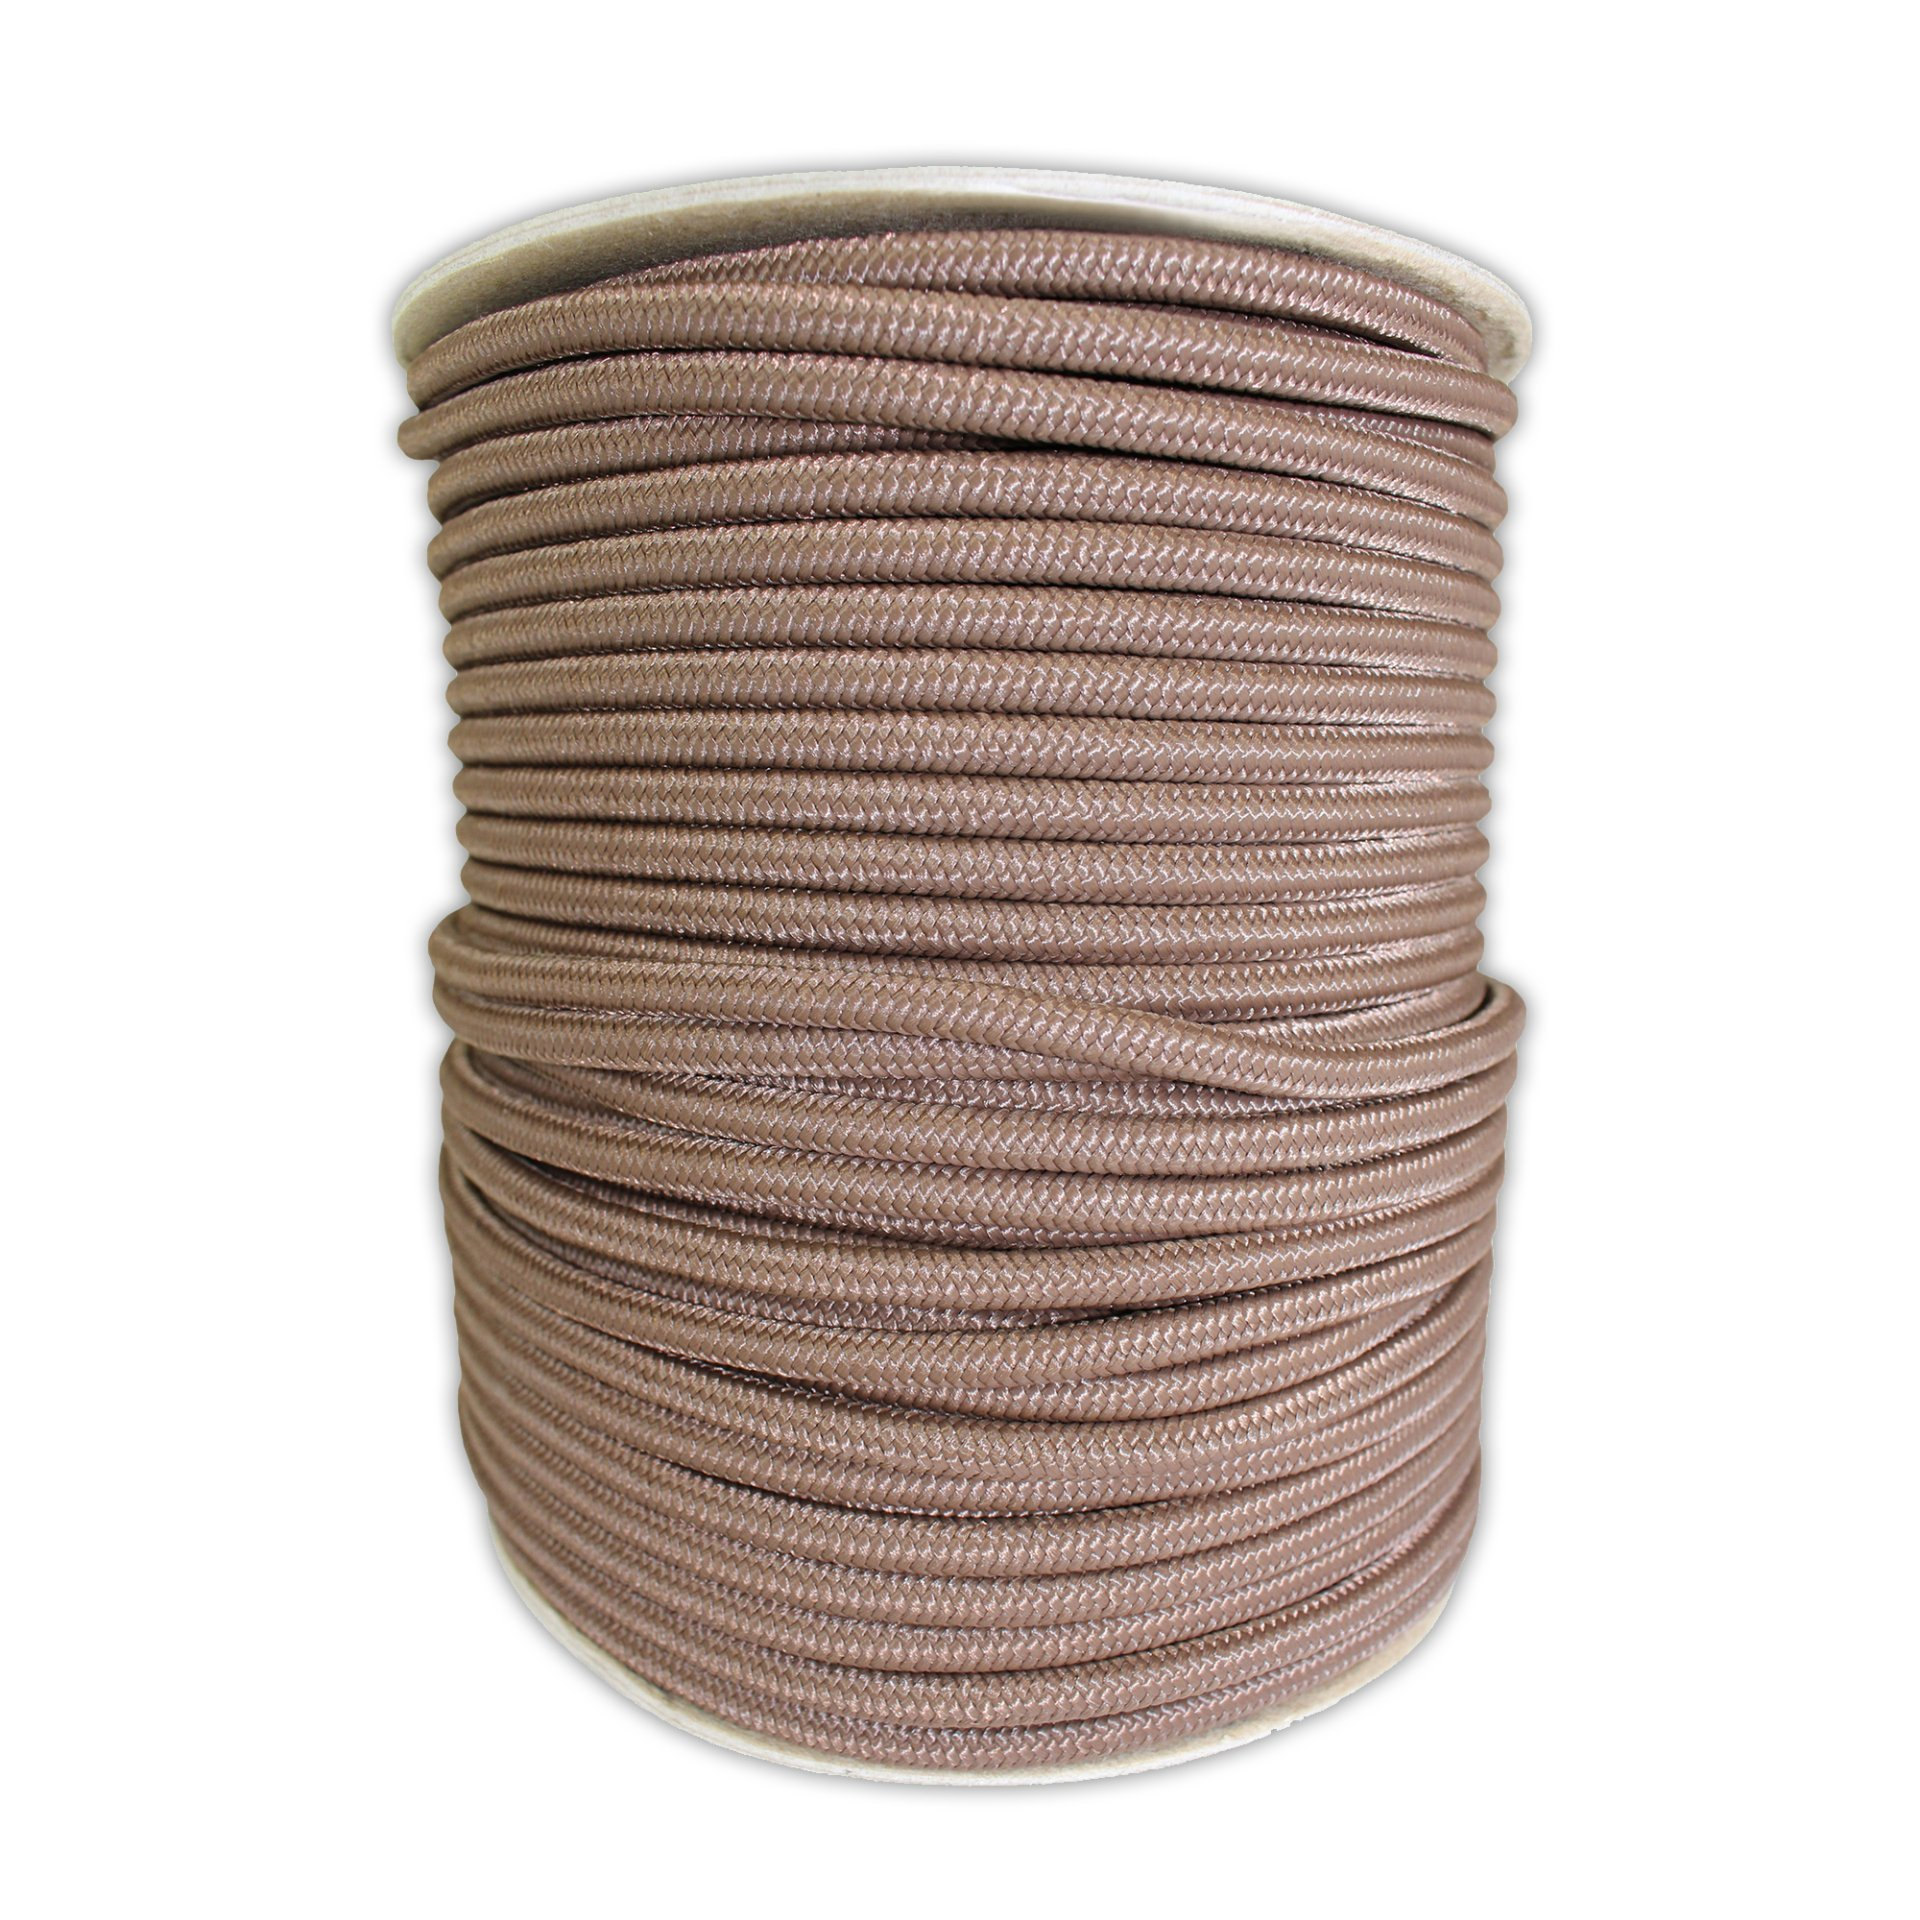 SGT KNOTS Braided Polyester Rope (1/4 in - 6mm) Braid on Braid Stiff Halter Cord - DIY Horse Halter - Low Stretch Cord for Arborist/Tree Rigging, Hiking, Crafting (50 ft - Coil, Brown)